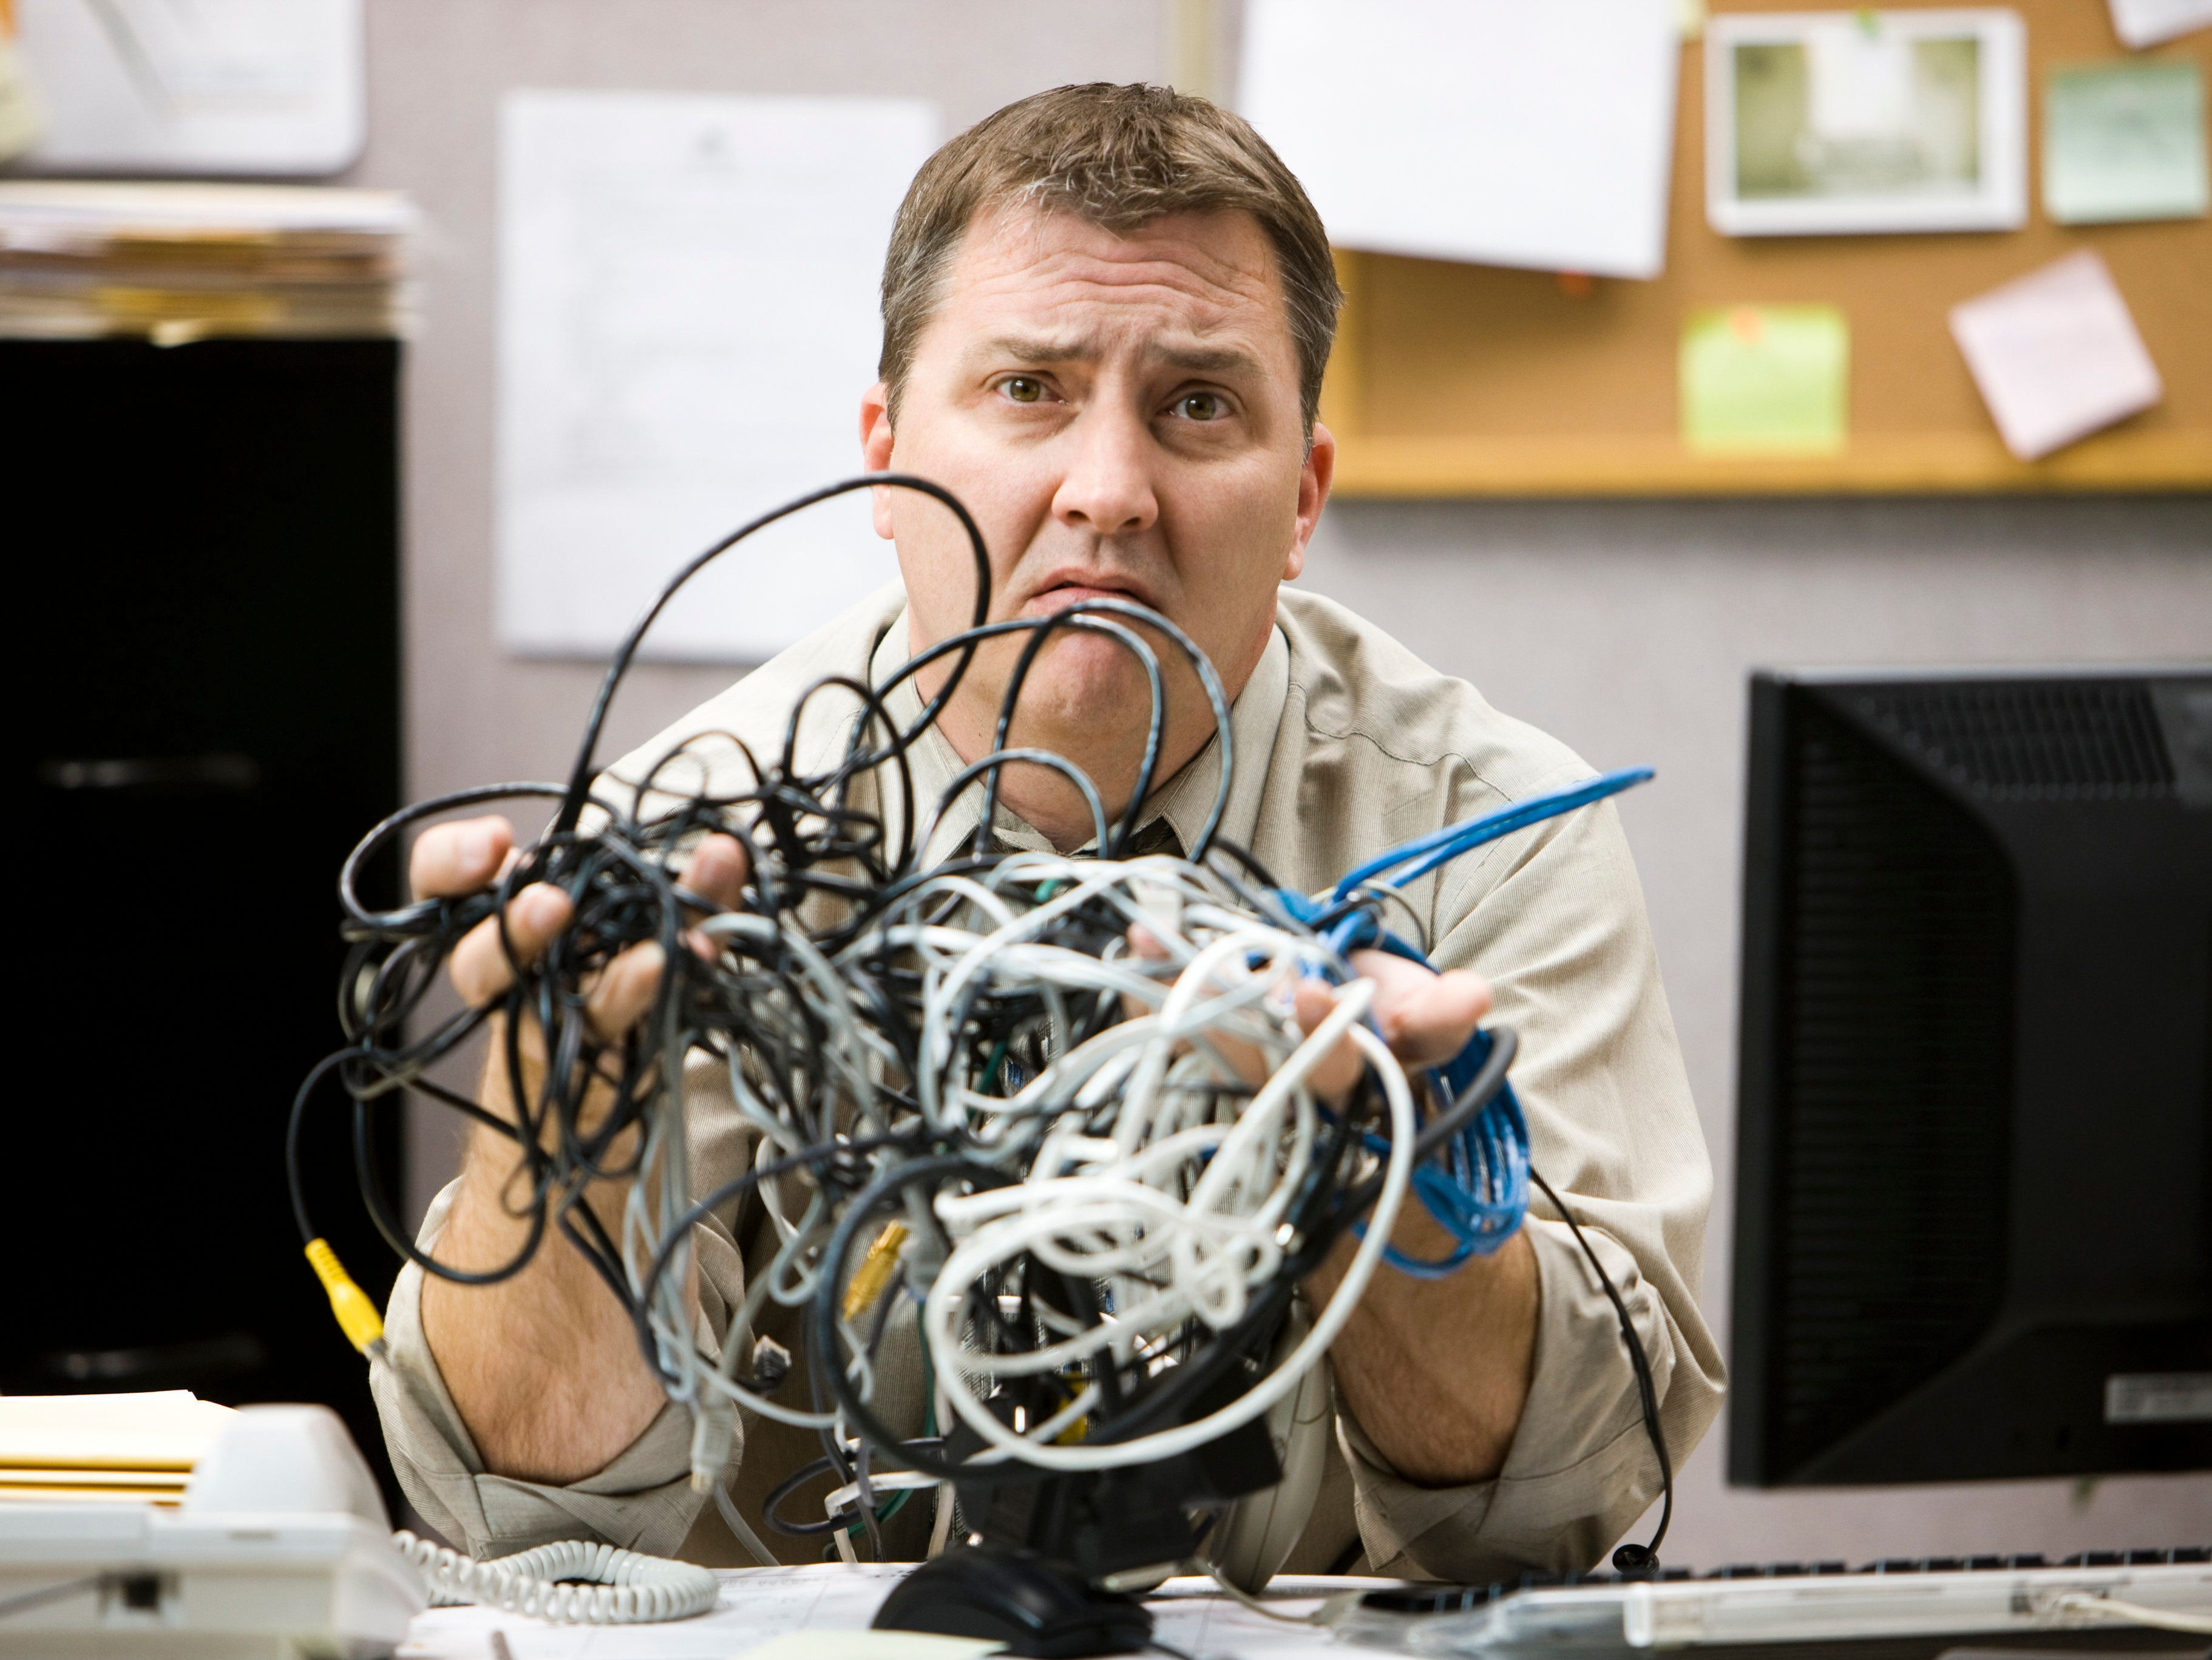 Super Wall Wiring And Keeps Messy Cables And Wires Out Of Sight View Wiring Digital Resources Lavecompassionincorg